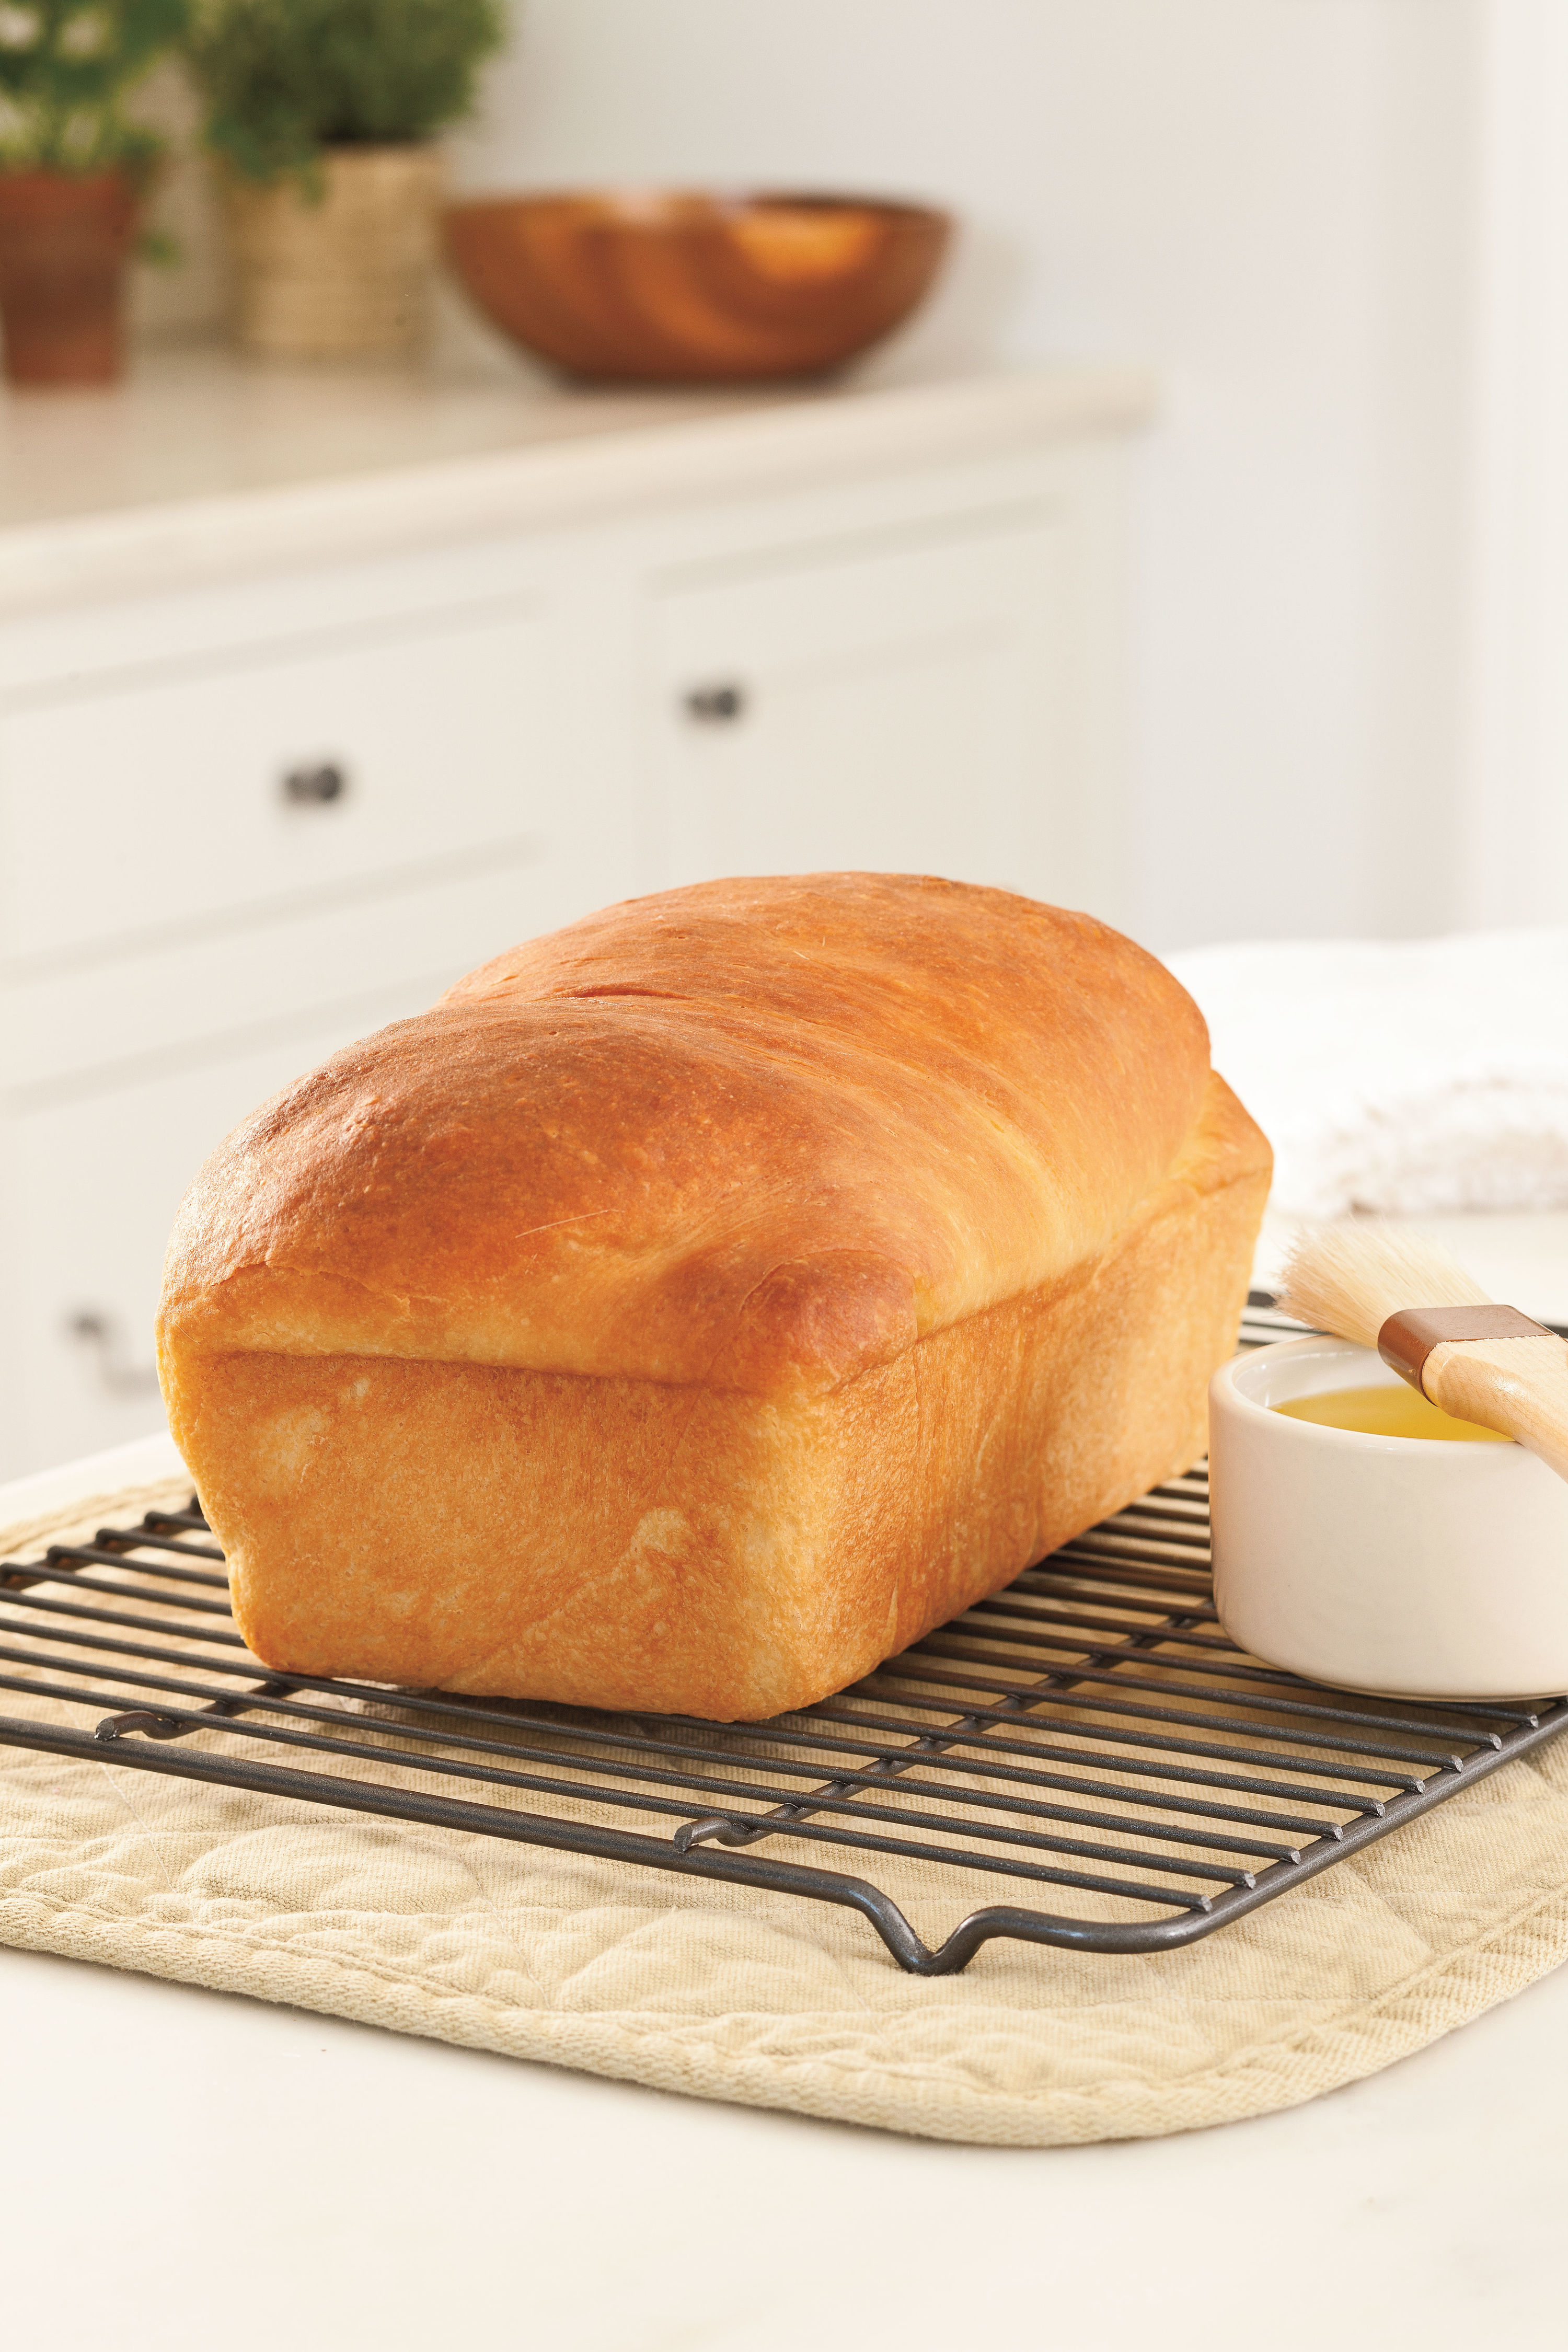 WATCH: This is the Secret to Making Bakery-Worthy Bread at Home